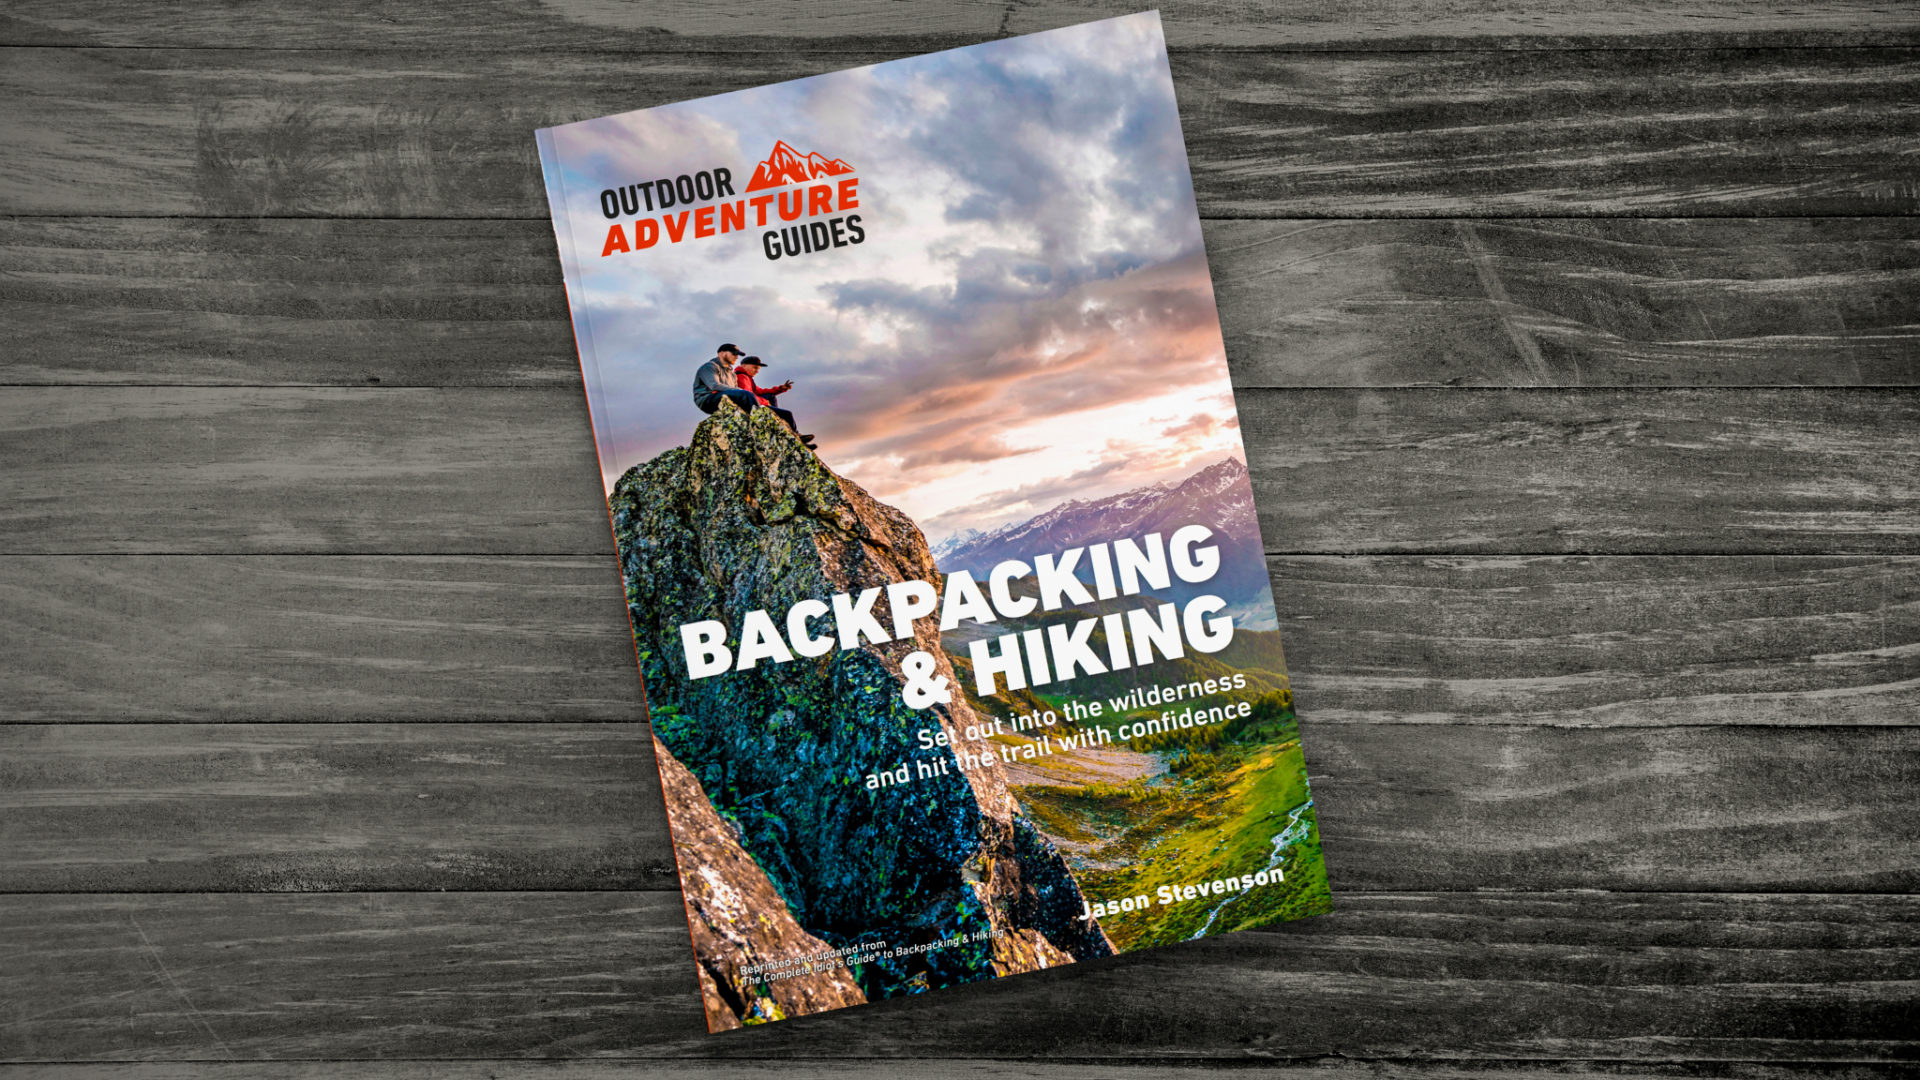 Backpacking & Hiking Outdoor Adventure Guides on dark grey wood